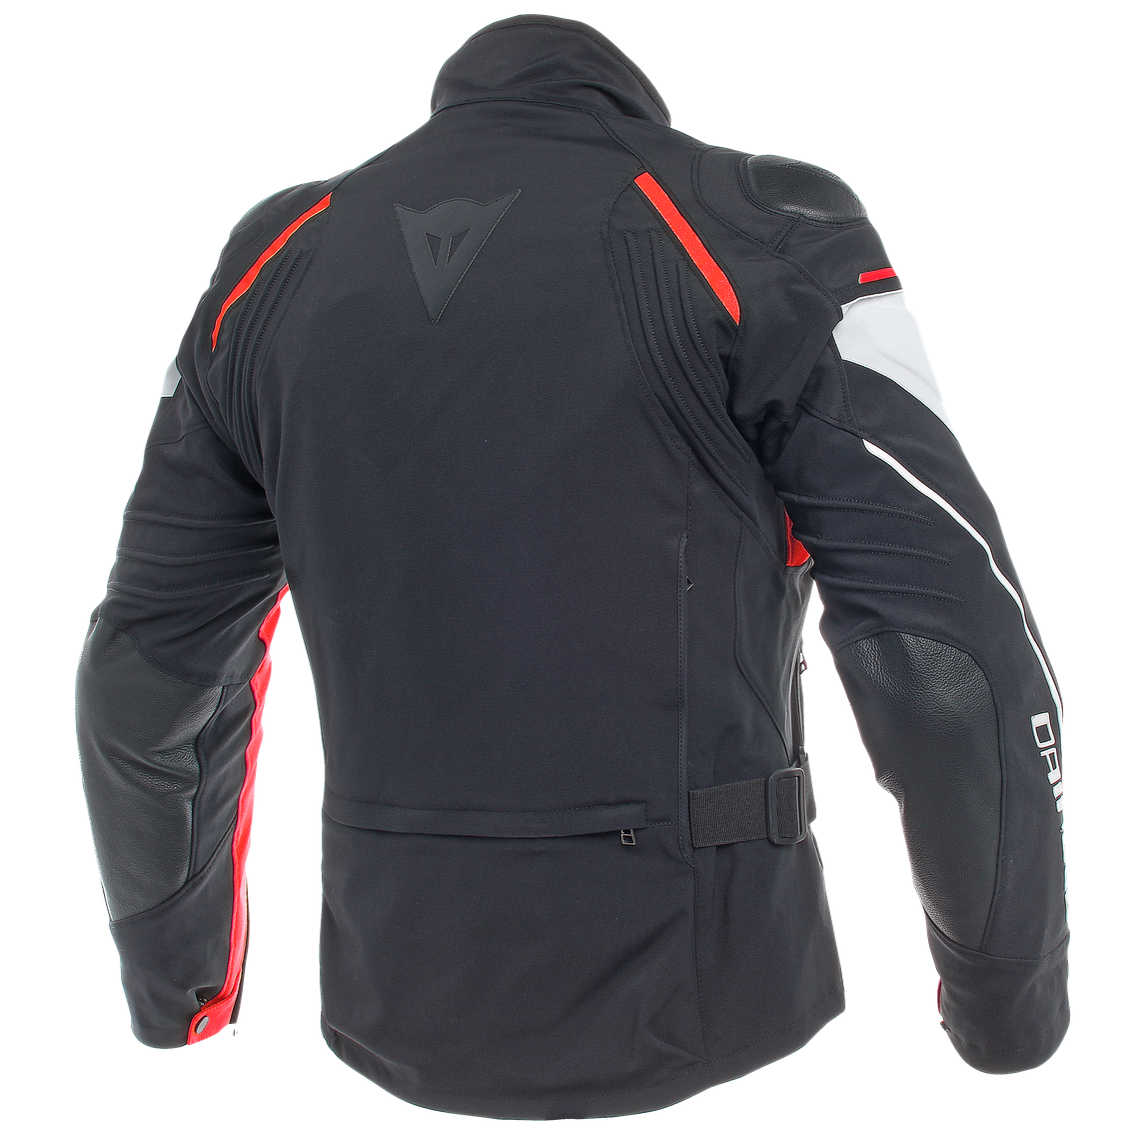 veste dainese rain master d dry noir gris glac rouge veste moto dainese japauto accessoires. Black Bedroom Furniture Sets. Home Design Ideas